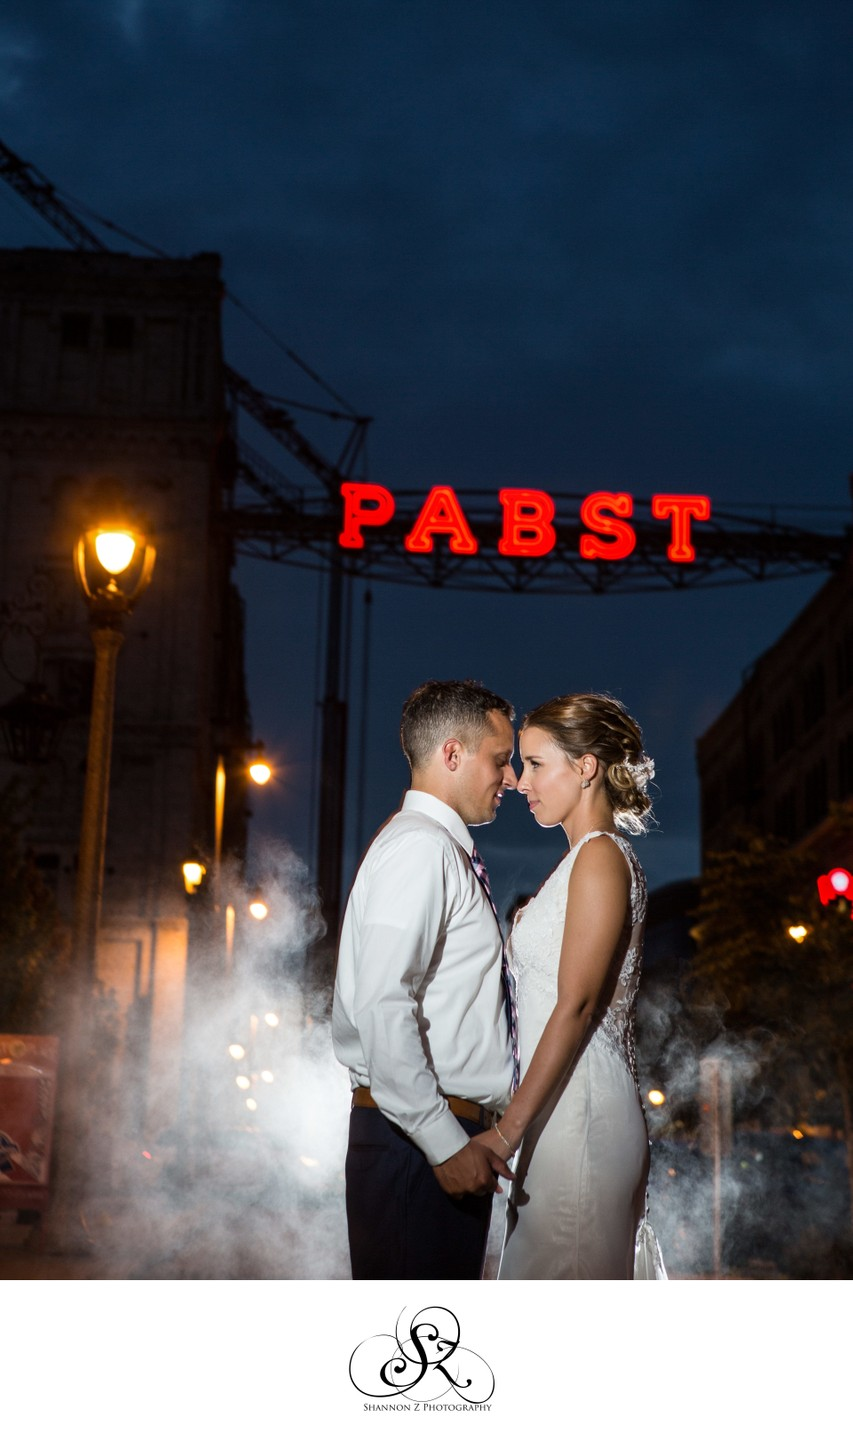 Pabst Sign:Historic Pabst Brewery Wedding